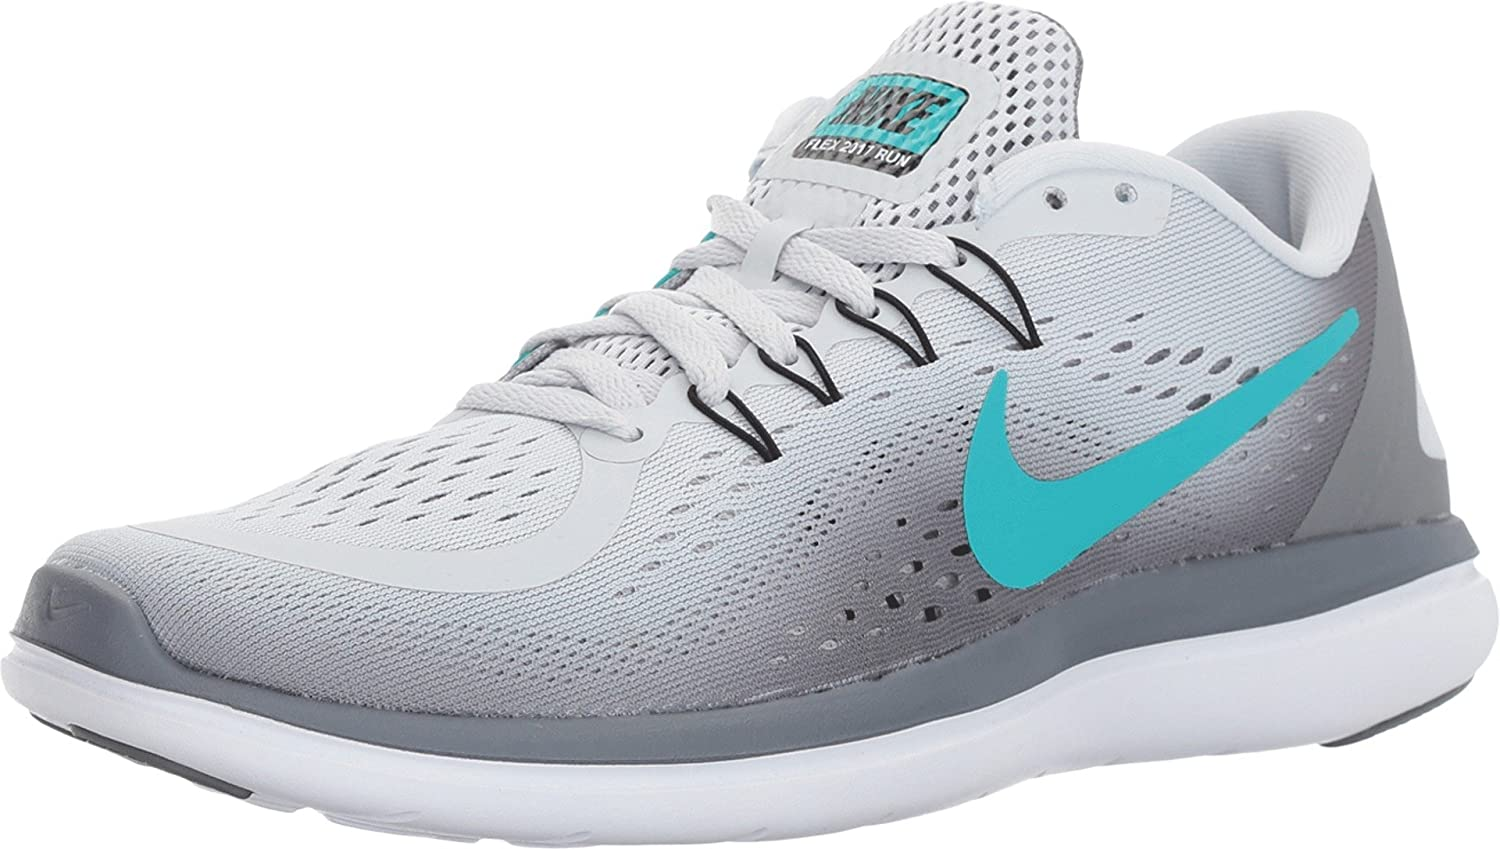 NIKE Flex 2017 RN Platinum/Clear B01NCOLAVT 8.5 B(M) US|Pure Platinum/Clear RN Jade/Cool Grey/Black 28ffcc